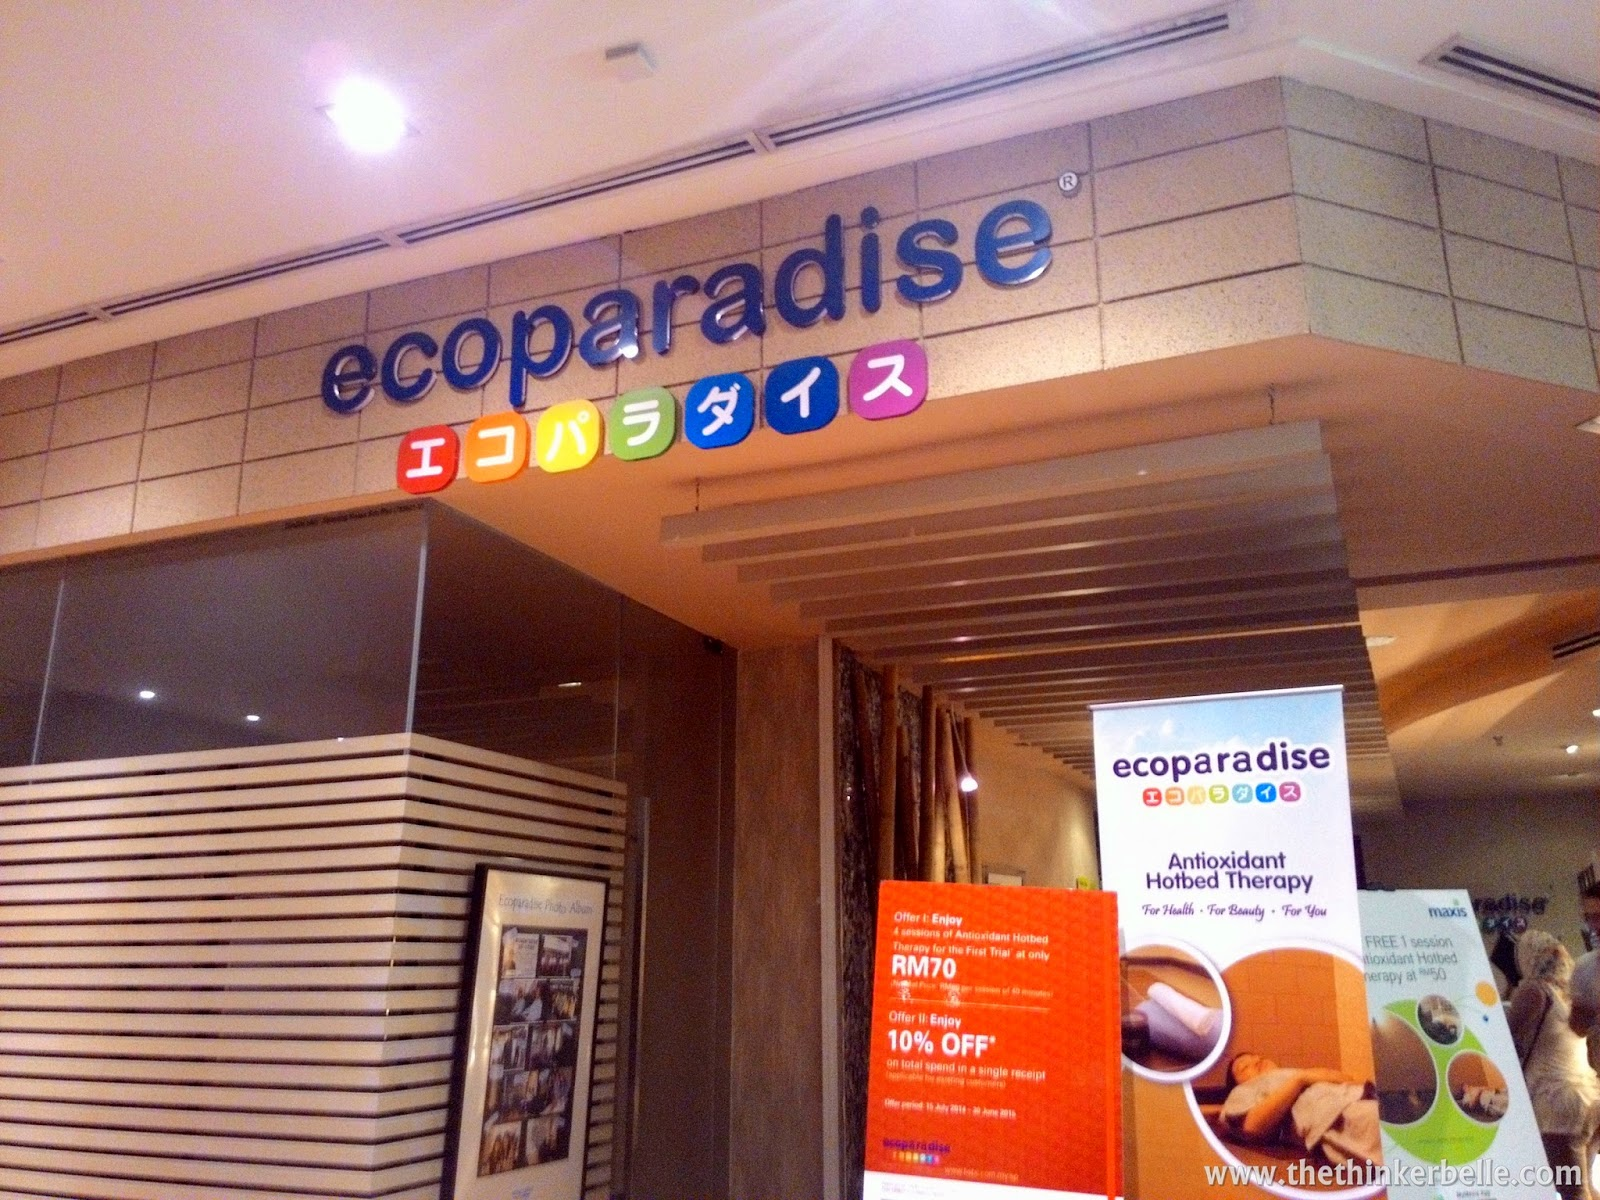 Ecoparadise Hotbed Therapy Location